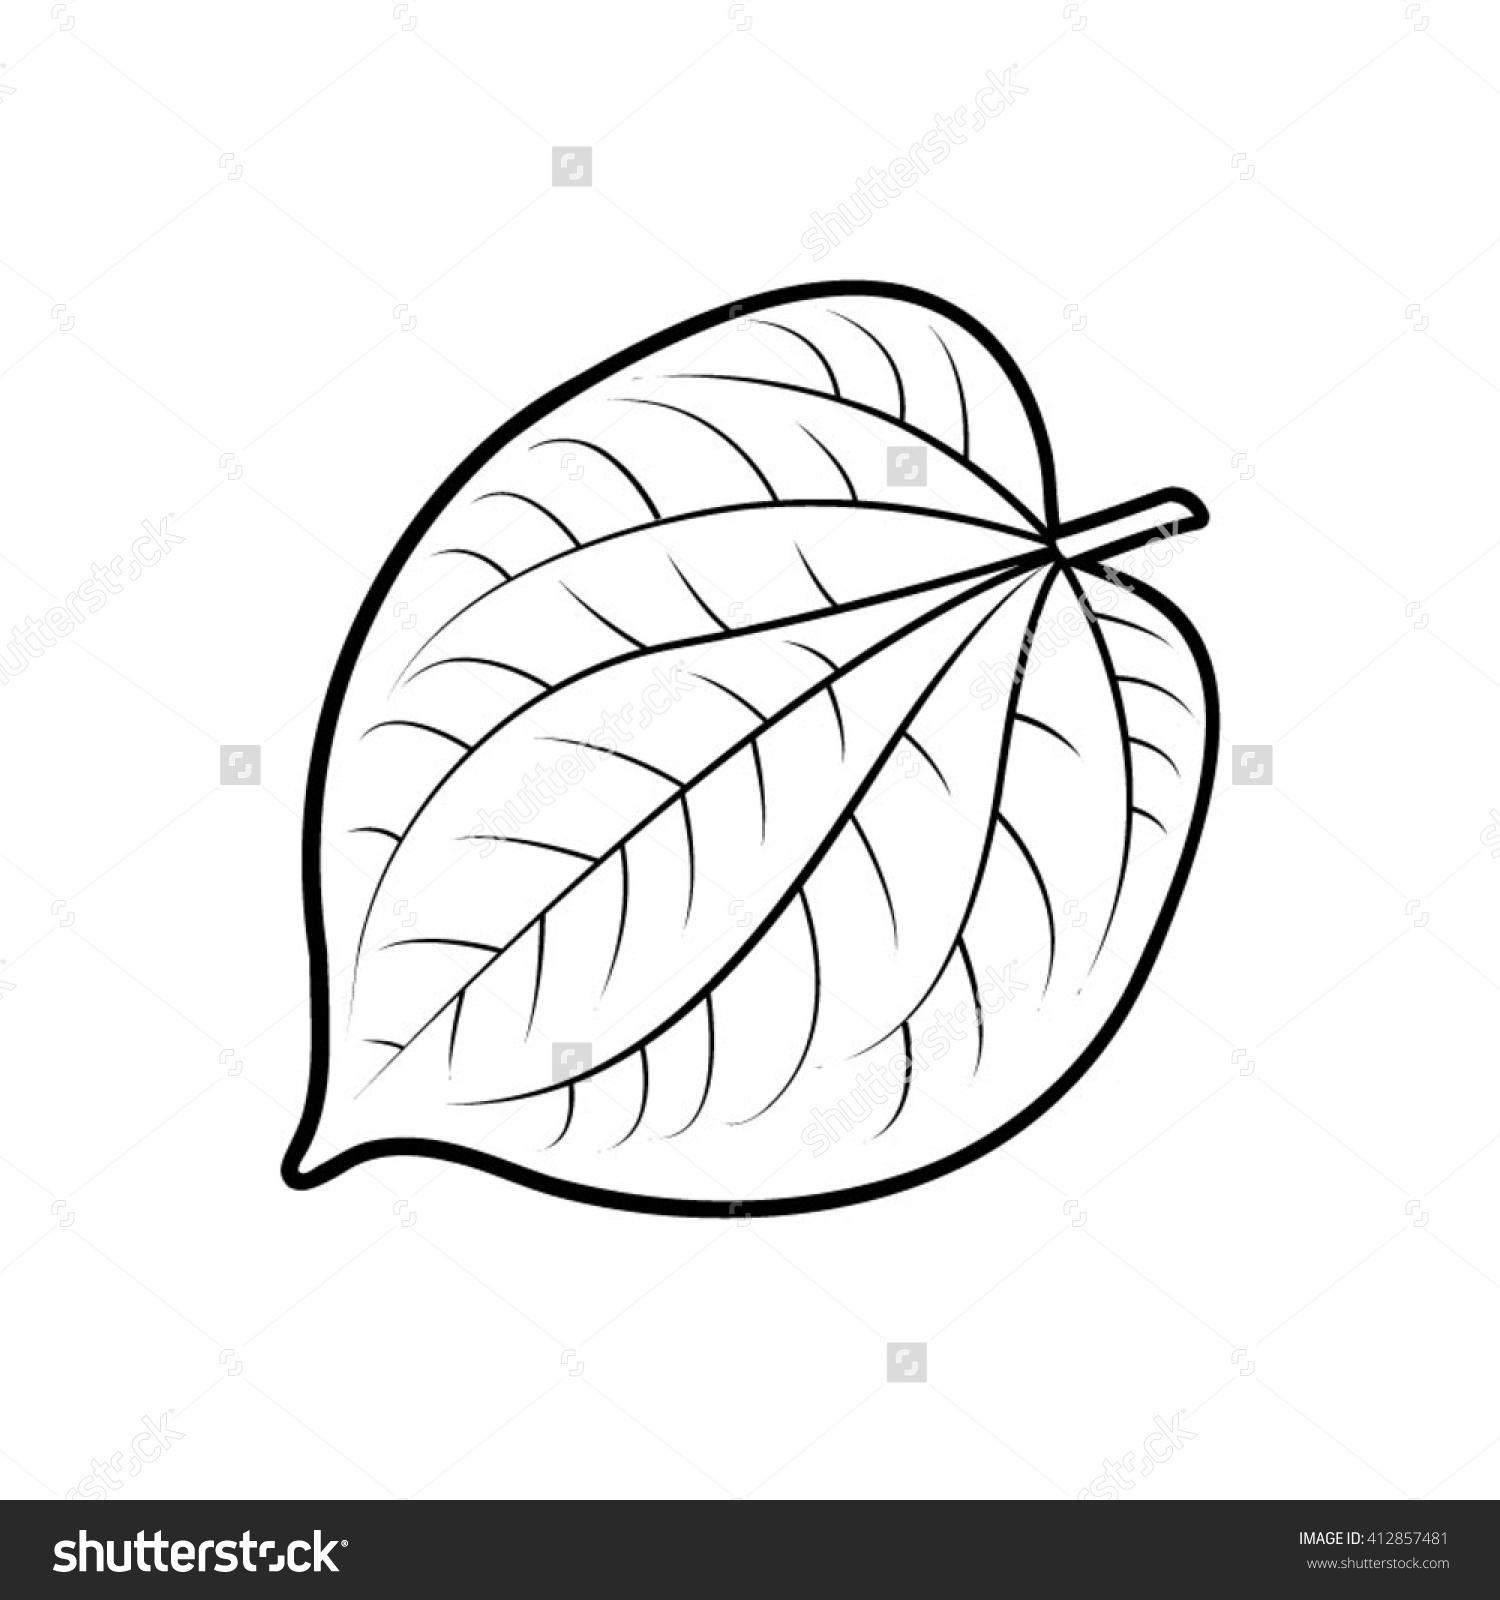 Betel leaf clipart.